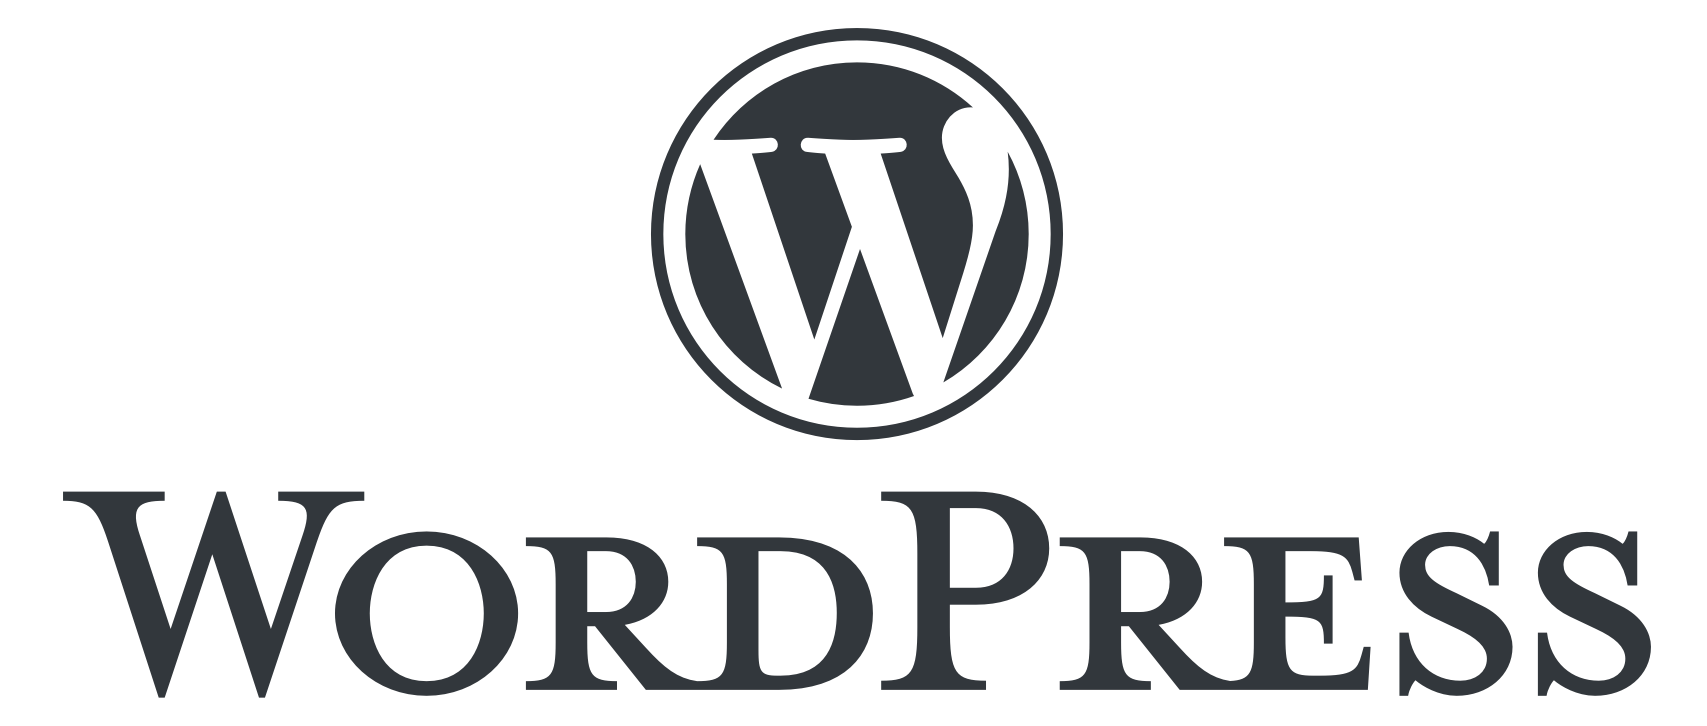 WordPress 5.2.2 Released